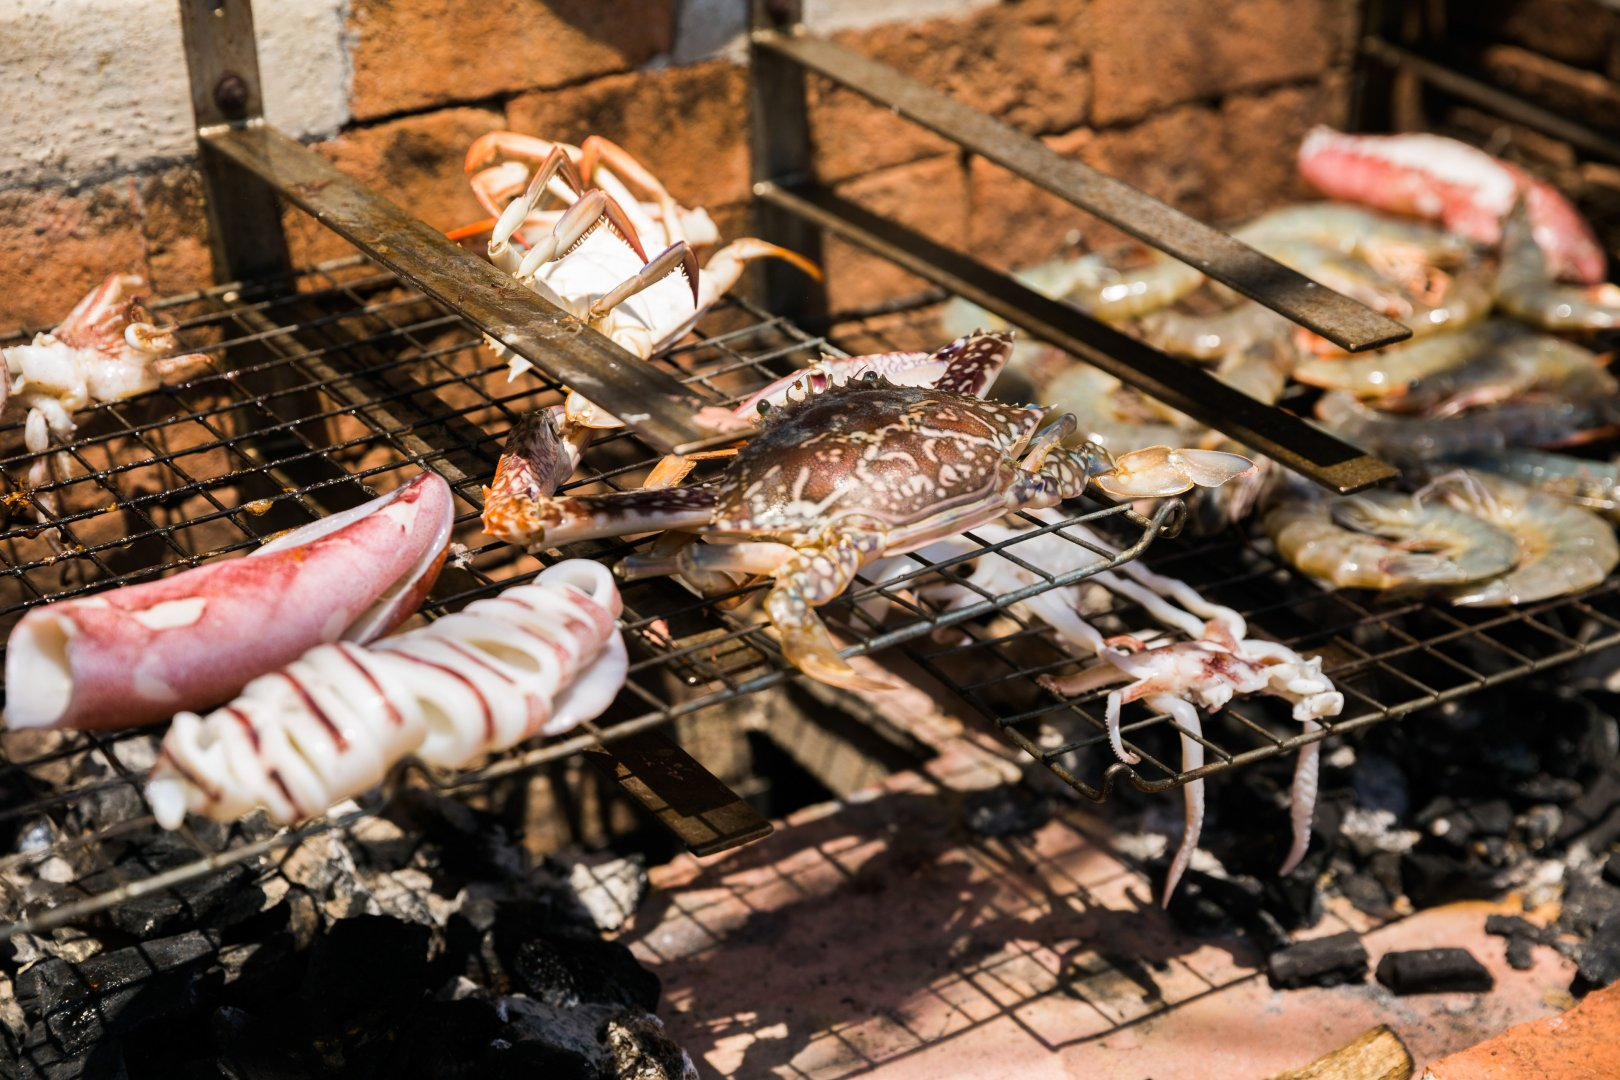 Barbecue Grilling Barbecue grill Meat Outdoor grill Churrasco food Cuisine Cooking Skewer Food Dish Flesh Roasting Grillades Street food Finger food Souvla